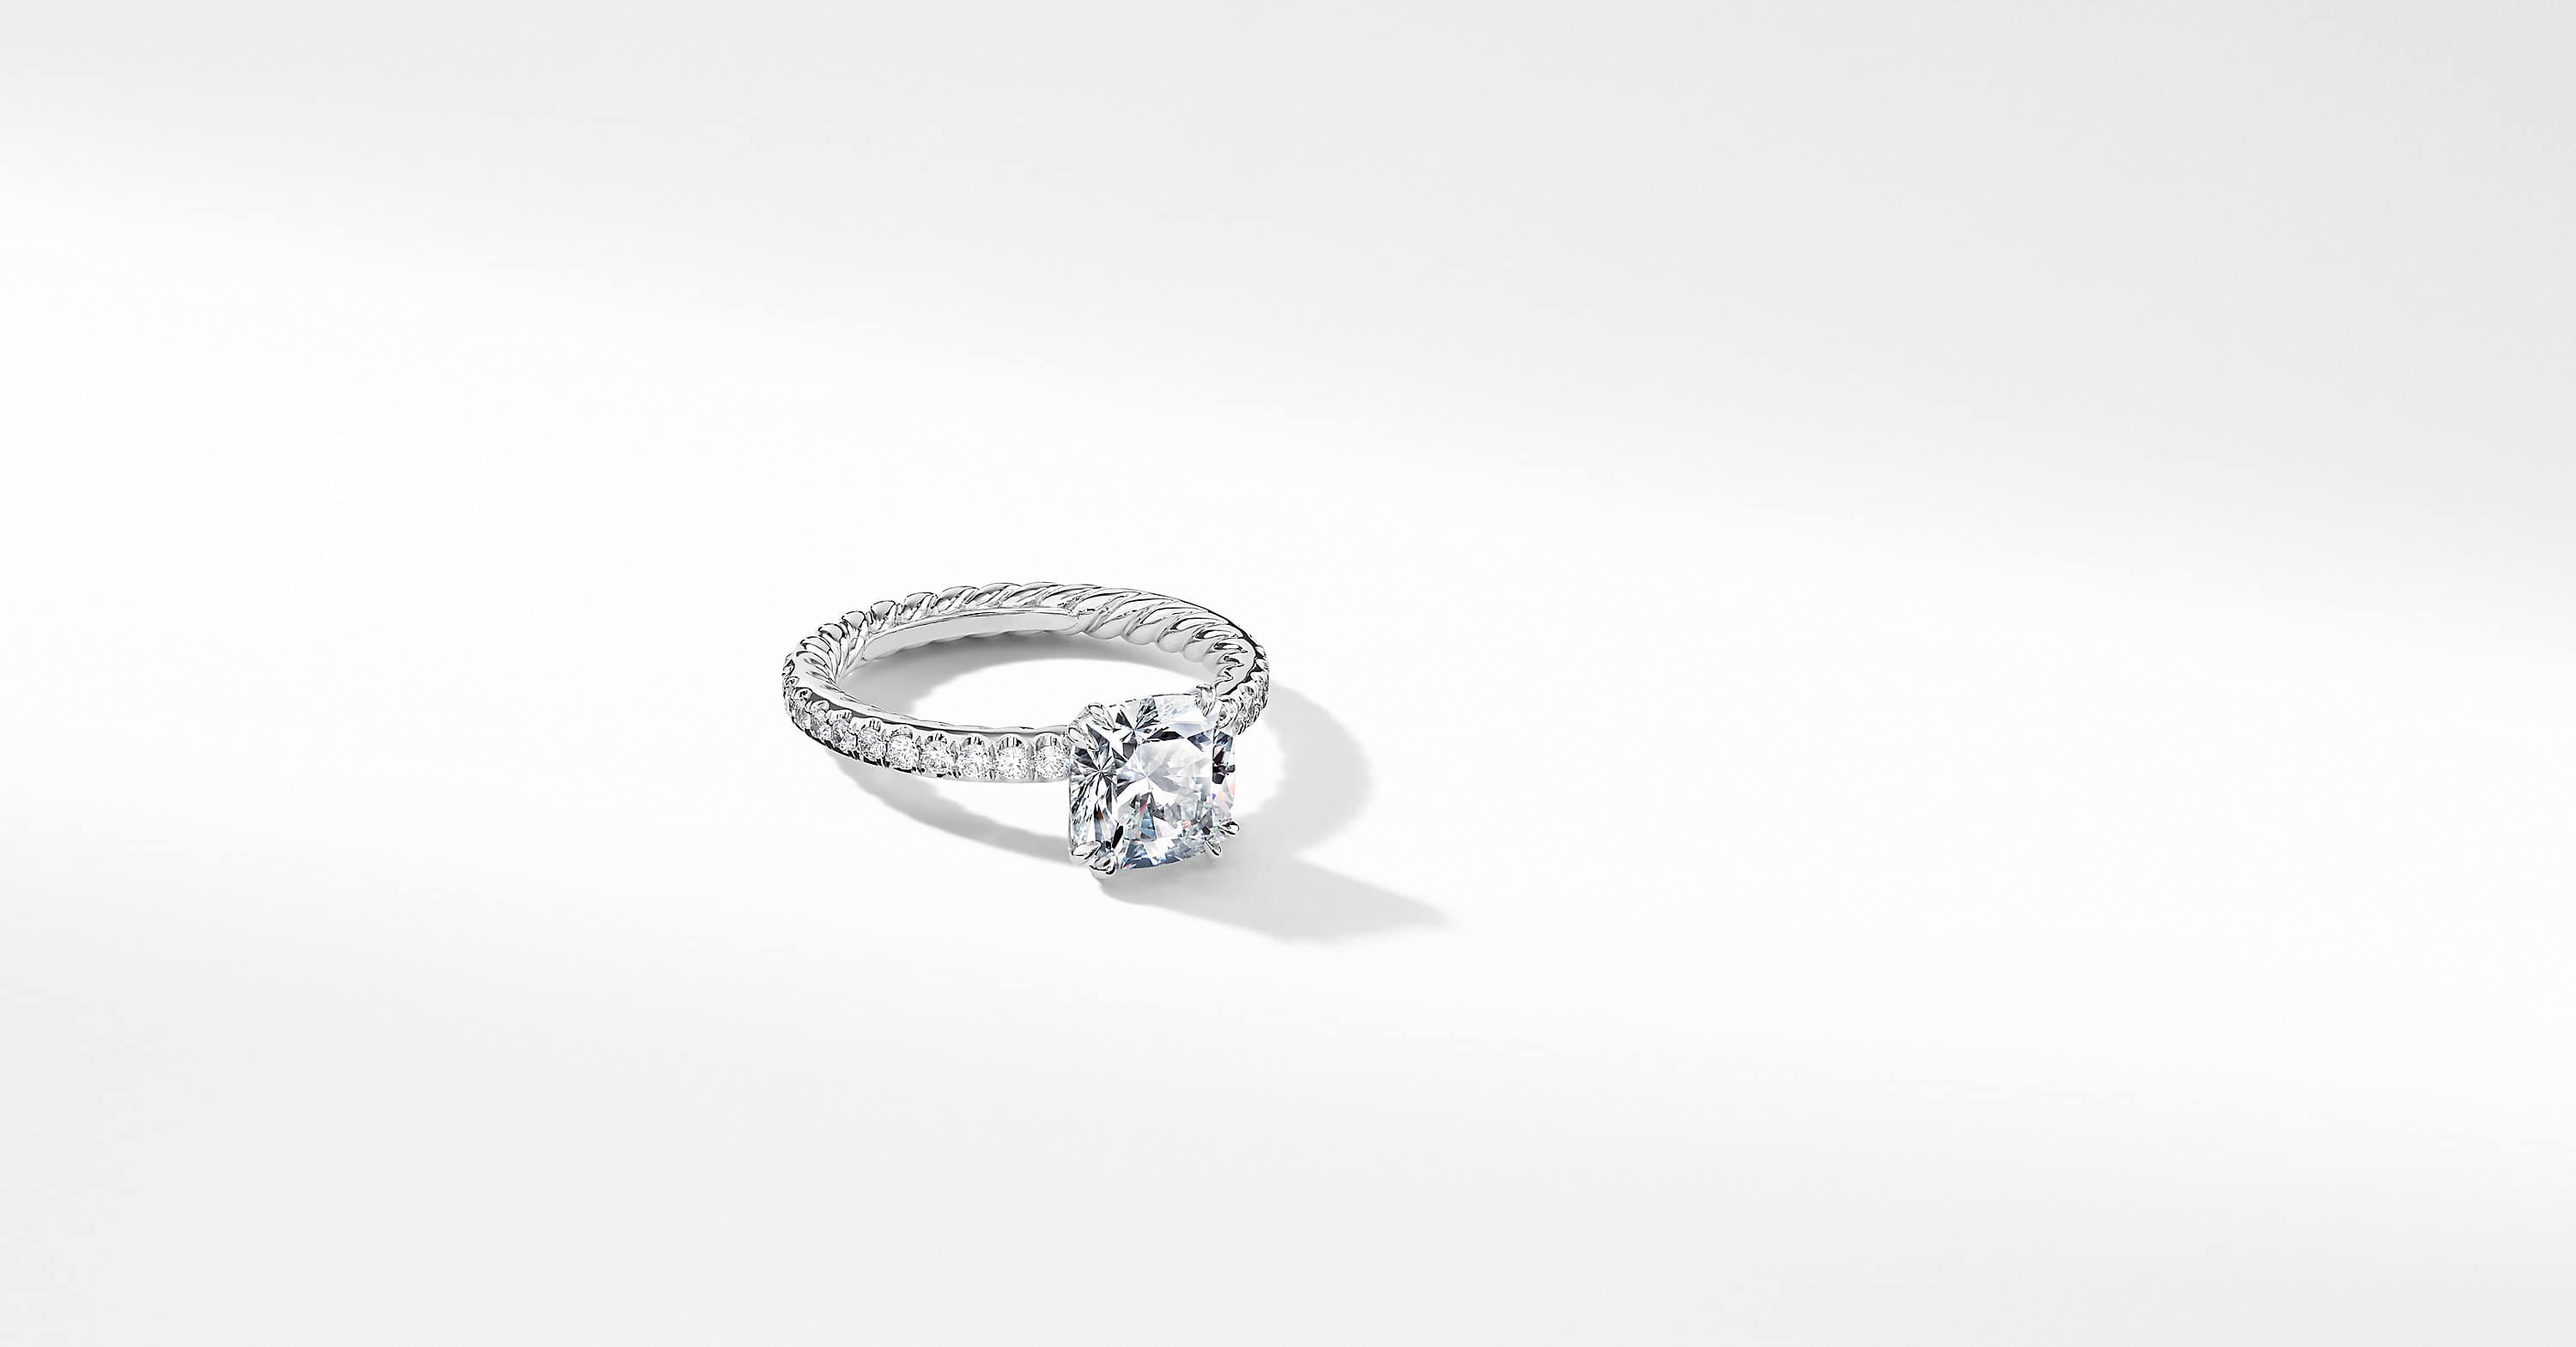 DY Eden Pavé Engagement Ring in Platinum, Cushion